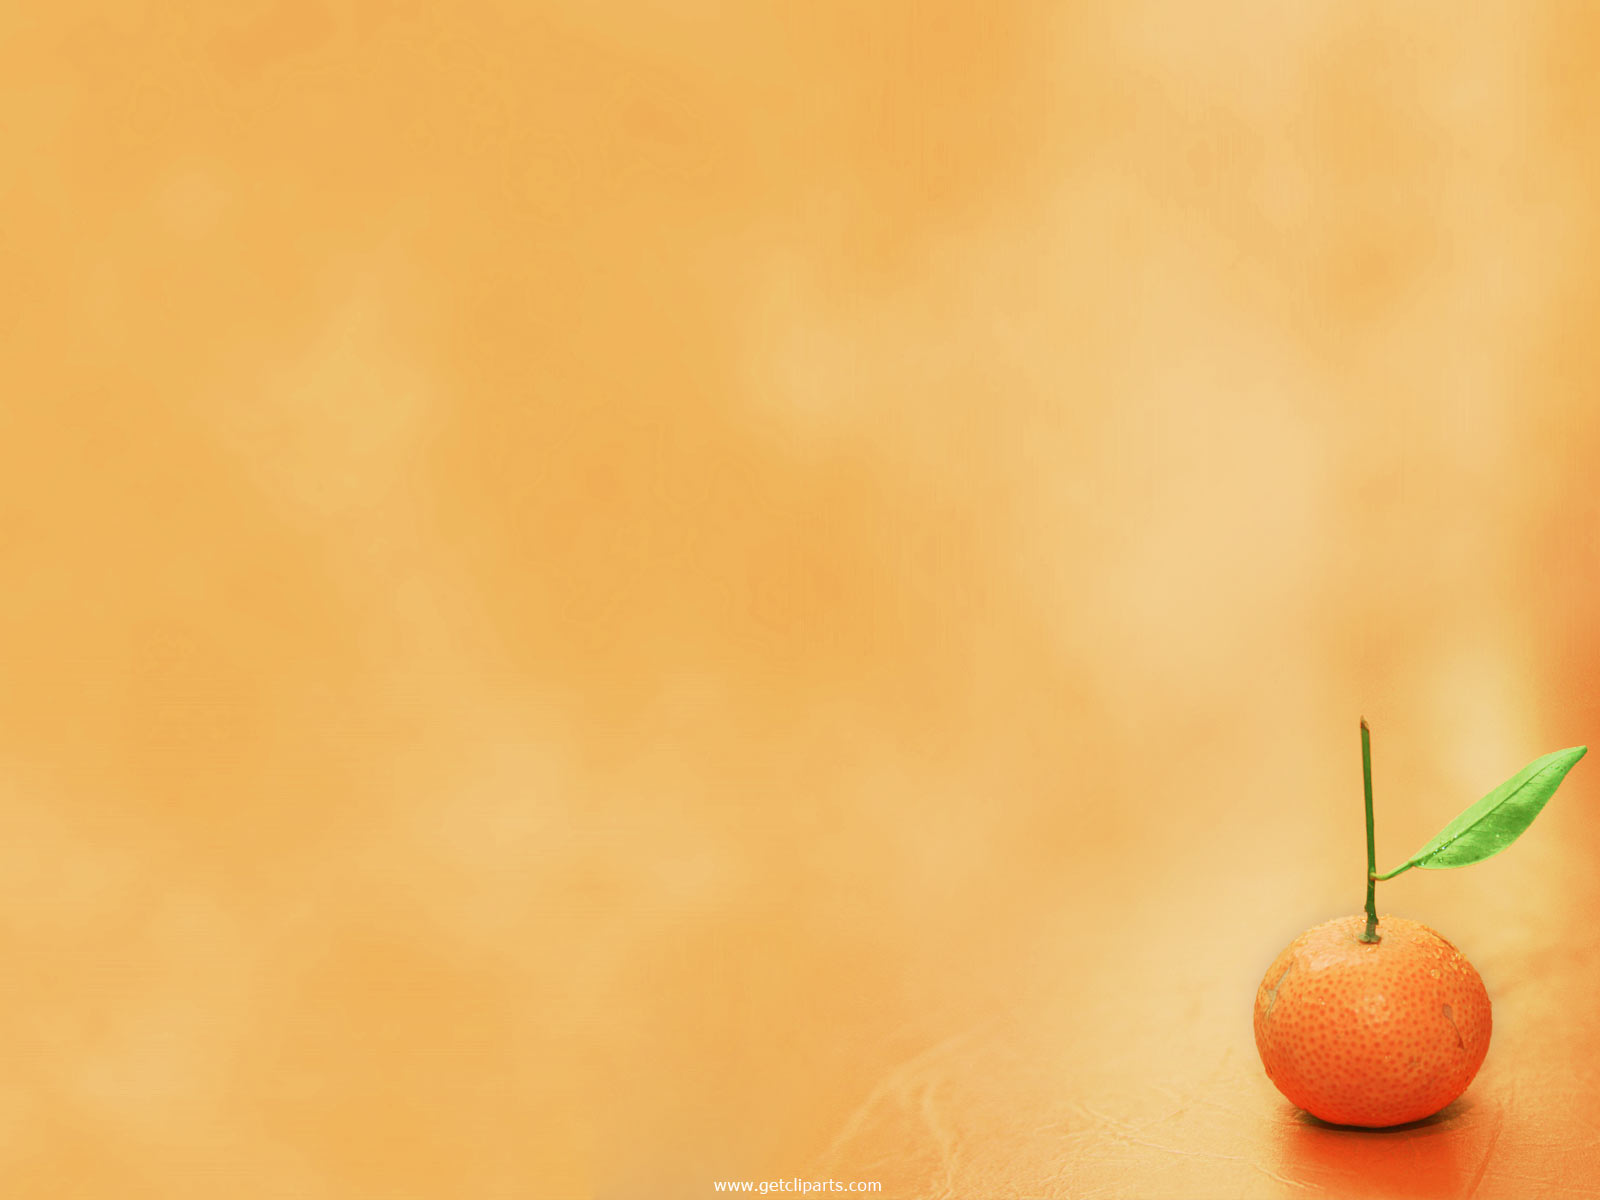 http://2.bp.blogspot.com/-9tbuwXflG-0/TkAHSiUKUPI/AAAAAAAAIcU/1Ah3FeNxrQ4/s1600/orange_fruit+background+wallpaper+Free.jpg